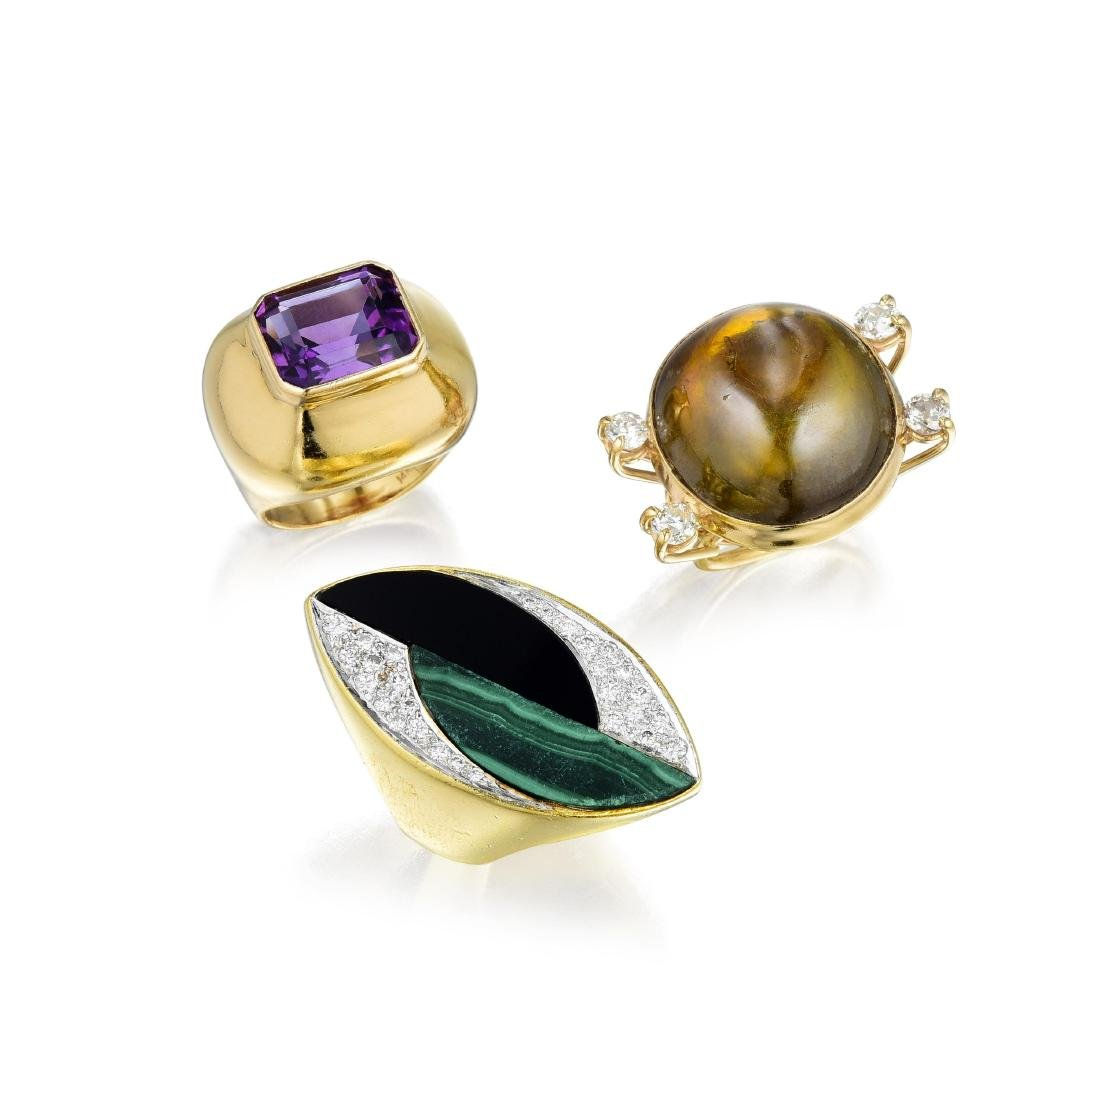 A Group of Gold Diamond and Gemstone Rings